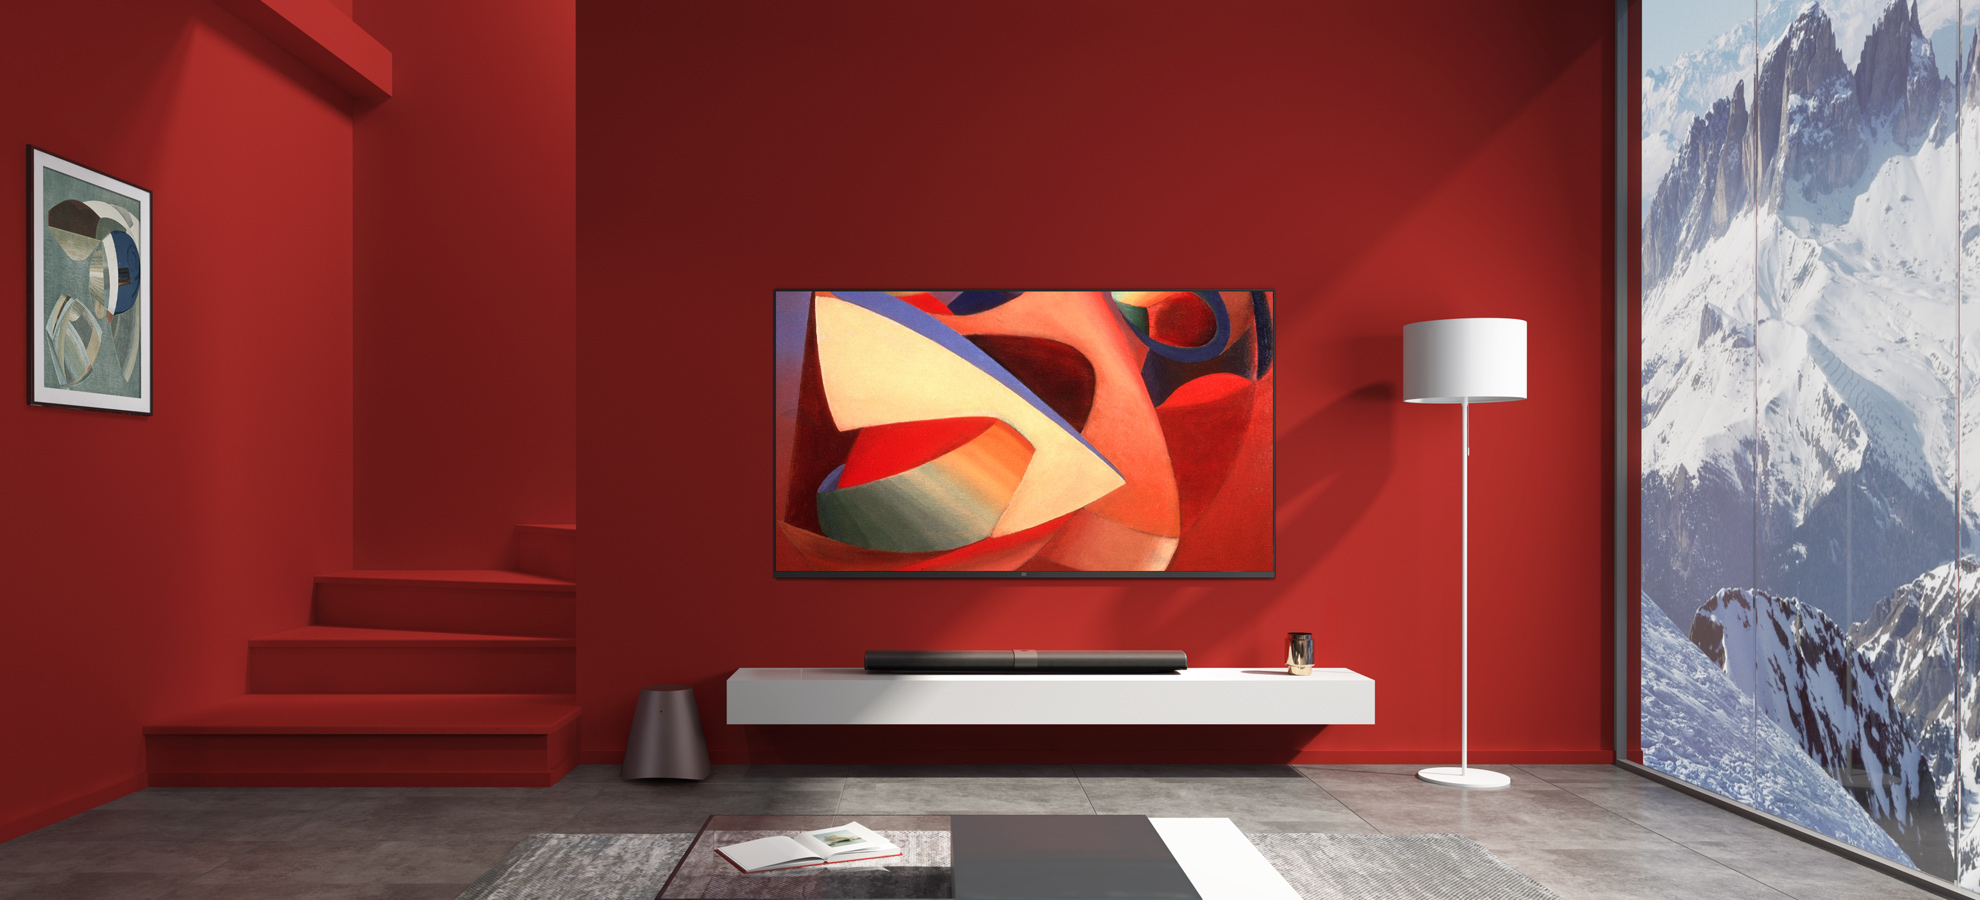 новые телевизоры Xiaomi Mi Art TV, Mi TV Full Screen